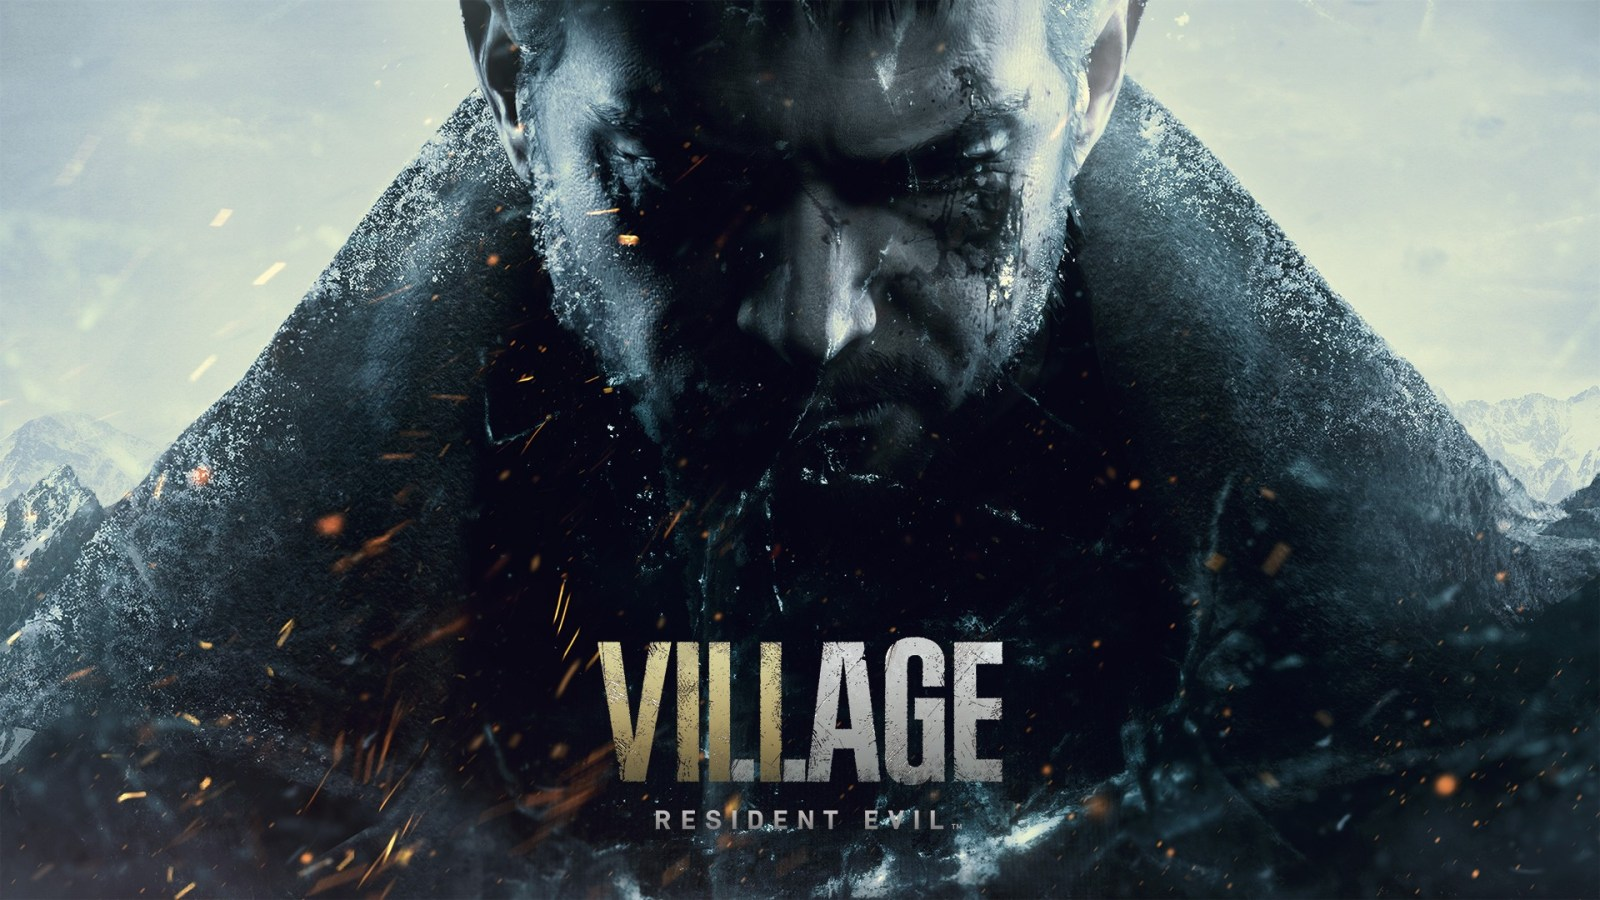 Resident Evil Village Gameplay Revealed During Showcase, Game Will Arrive on May 7, 2021, for Xbox Series X|S and Xbox One, PS4, and PS5